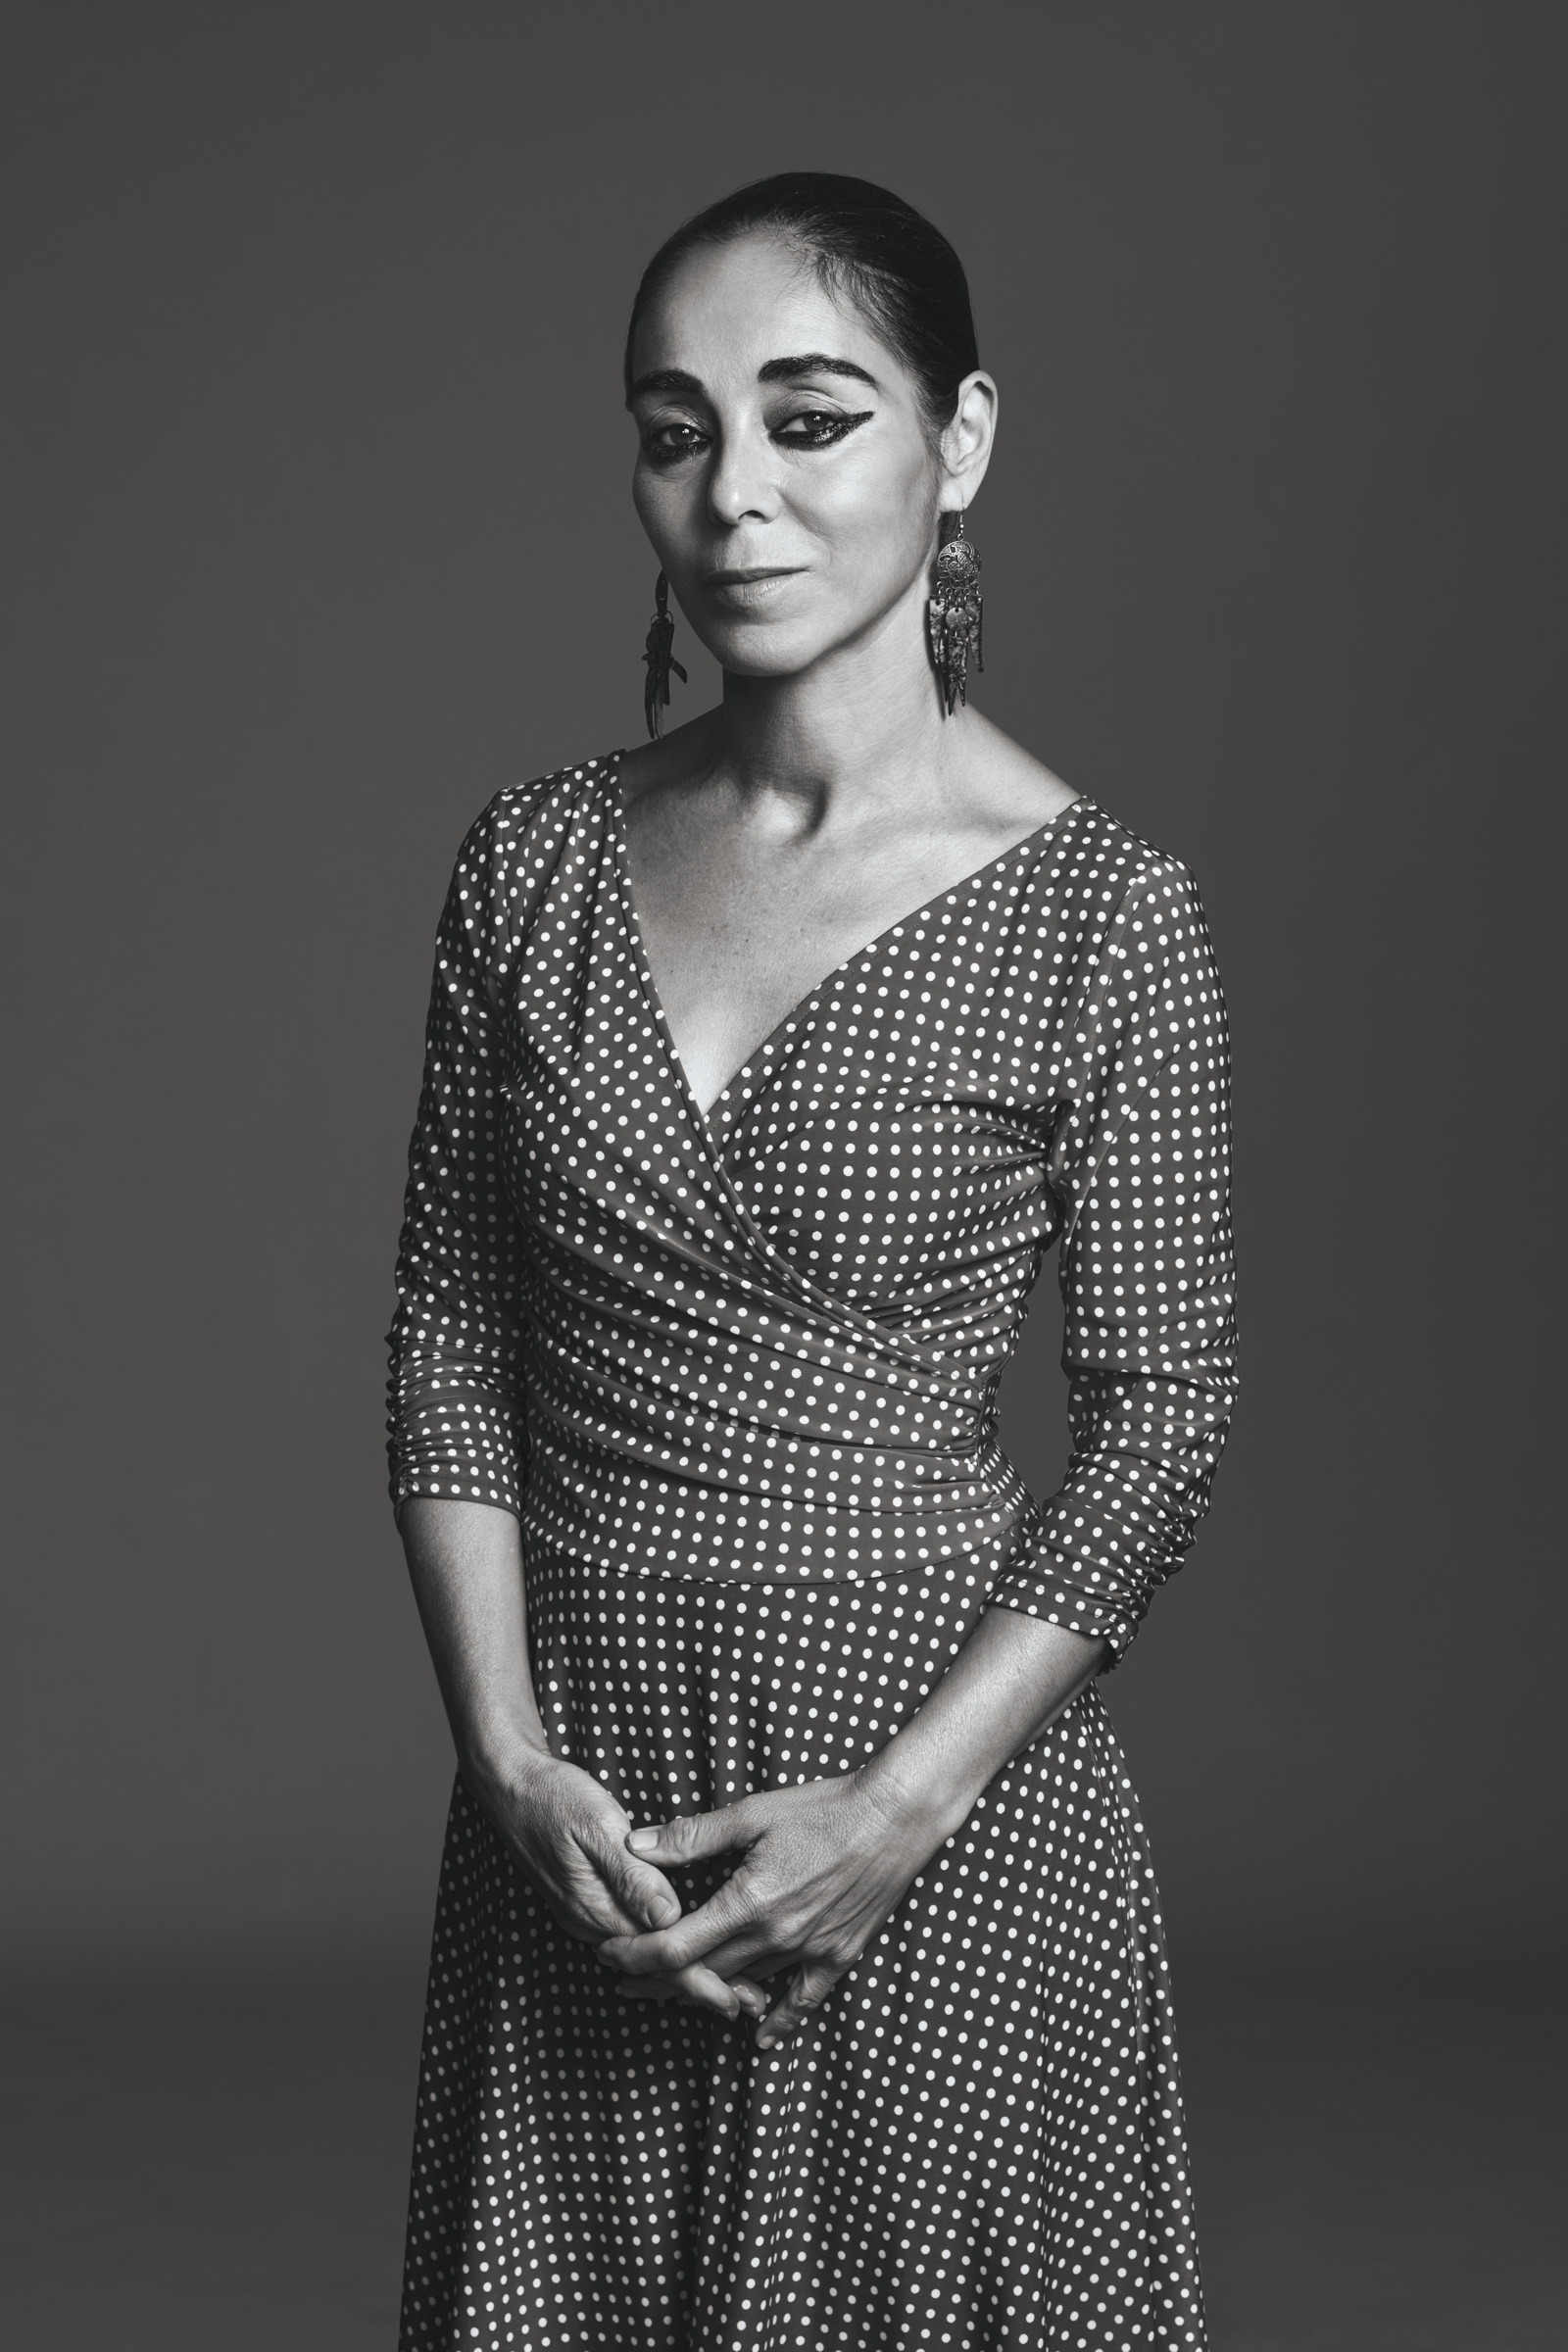 Undated: Iranian storyteller Shirin Neshat. (Photograph by Rodolfo Martinez/ Goodman Gallery)